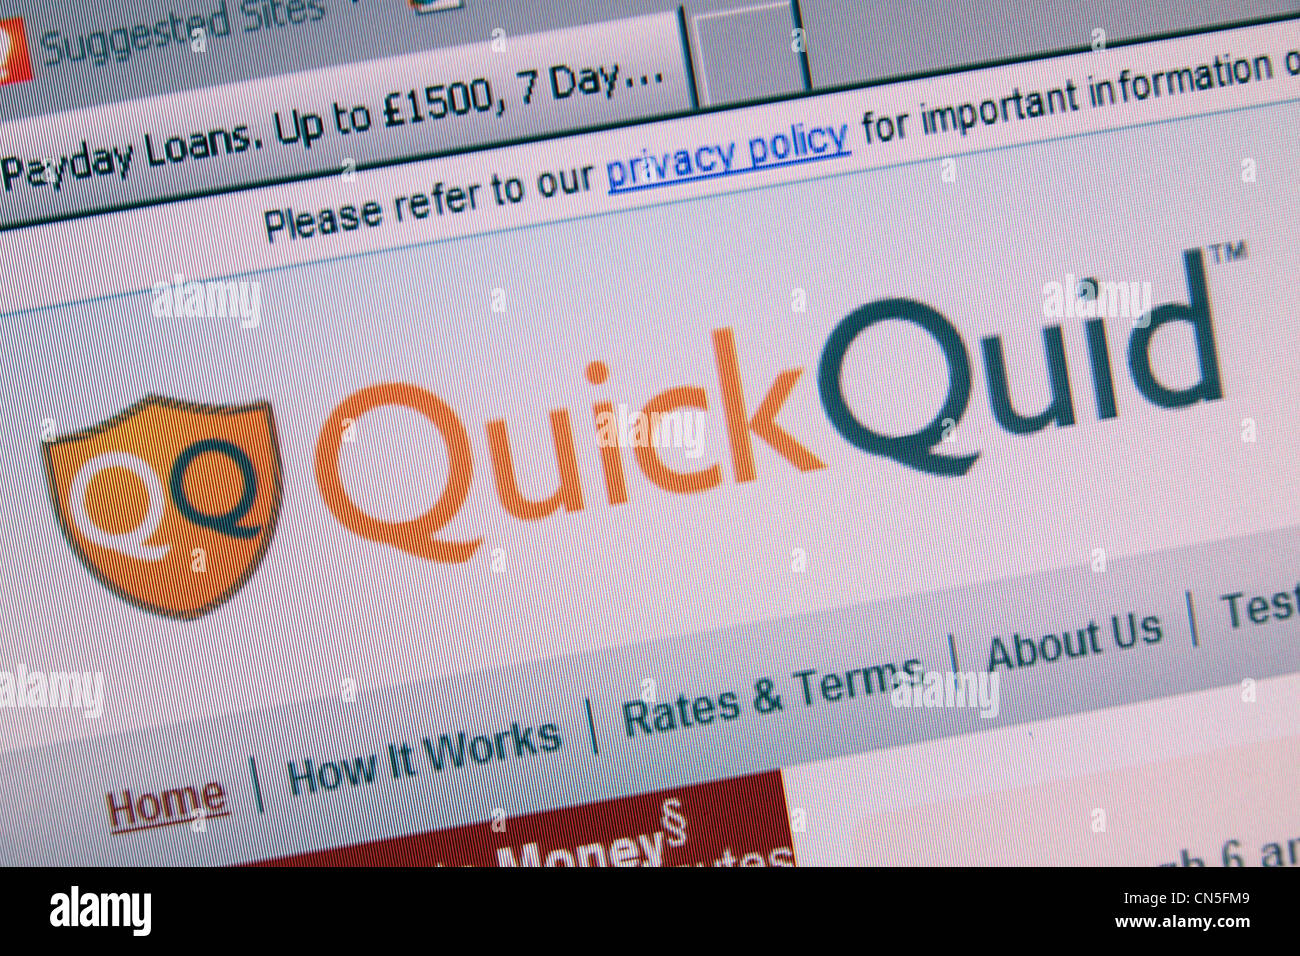 A screenshot of the QuickQuid web site, a payday loan company in the UK. - Stock Image